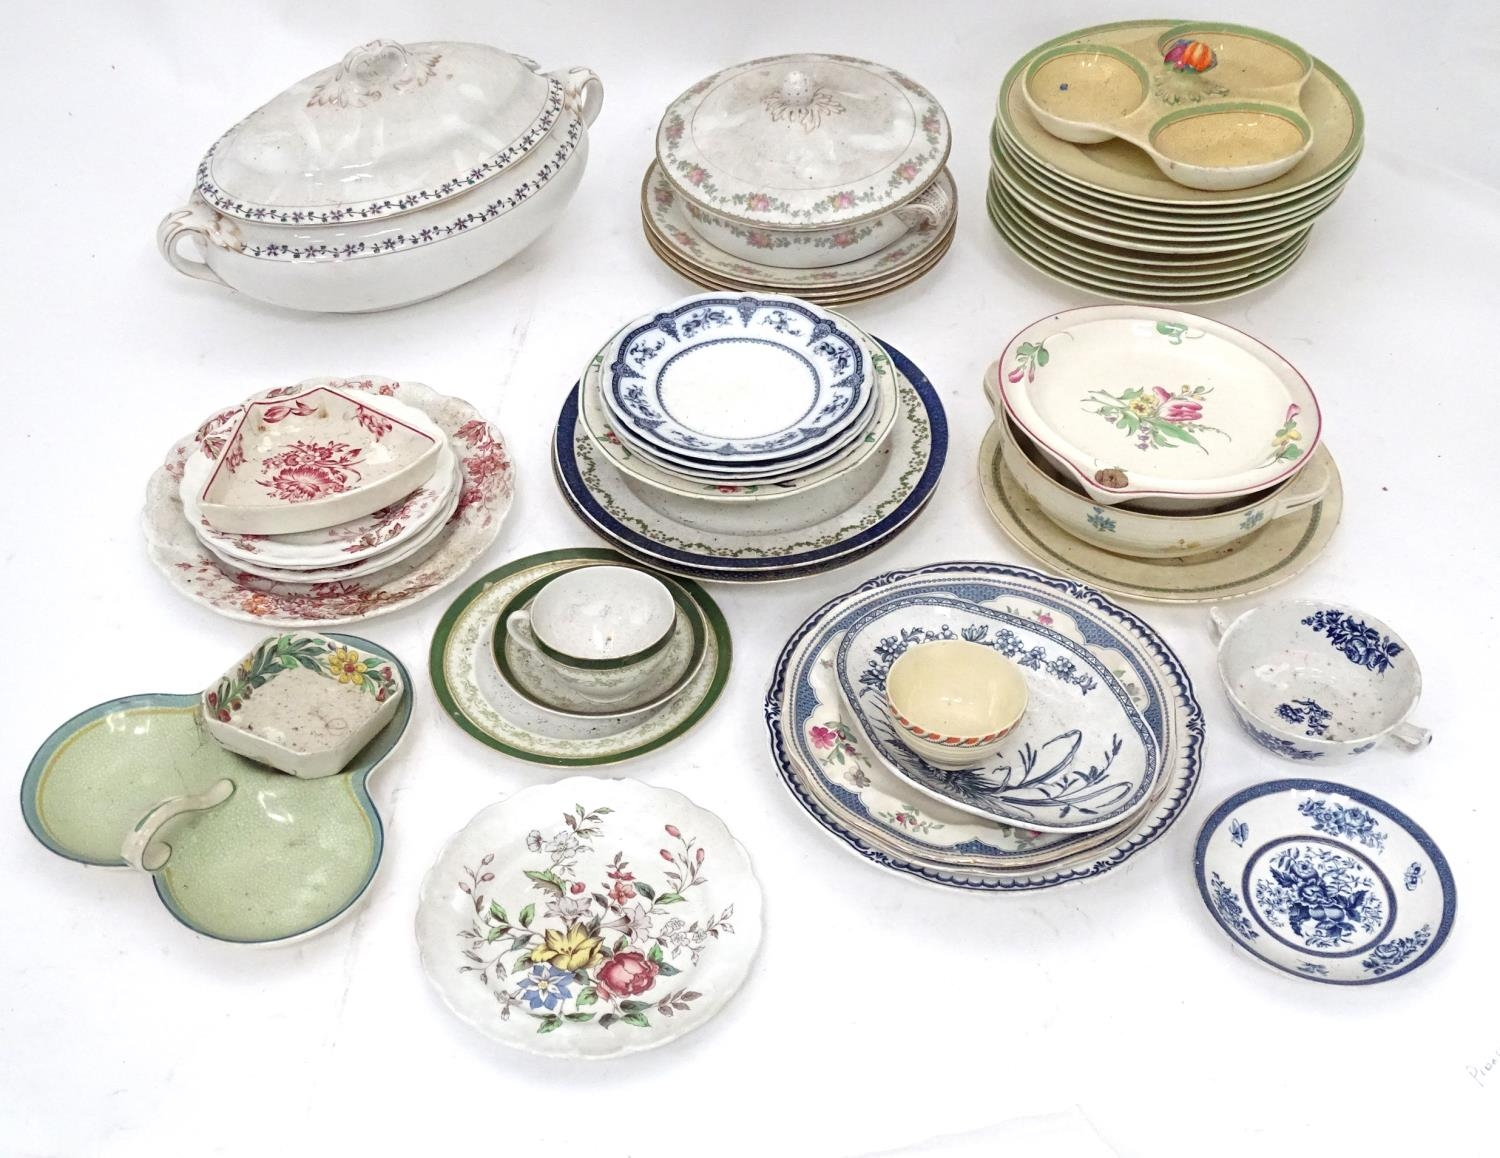 A quantity of assorted Booths china patterns to include Old Staffordshire, Flowerpiece, - Image 3 of 14